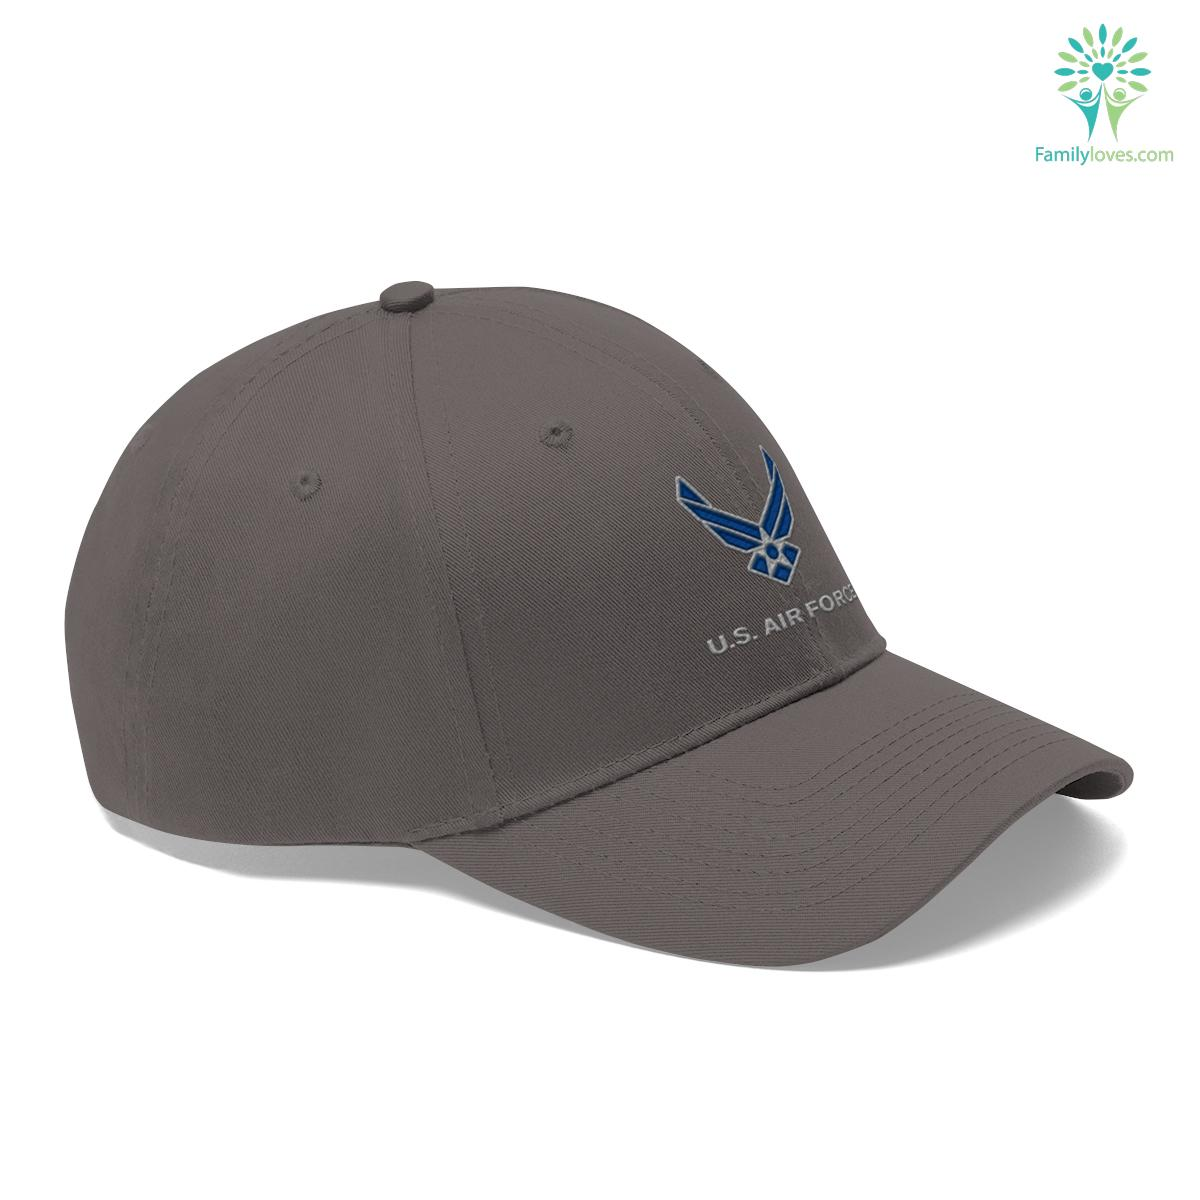 U.S. Air Force Hap Wing MILITARY Embroidery Dad Cap Unisex Twill Hat Familyloves.com